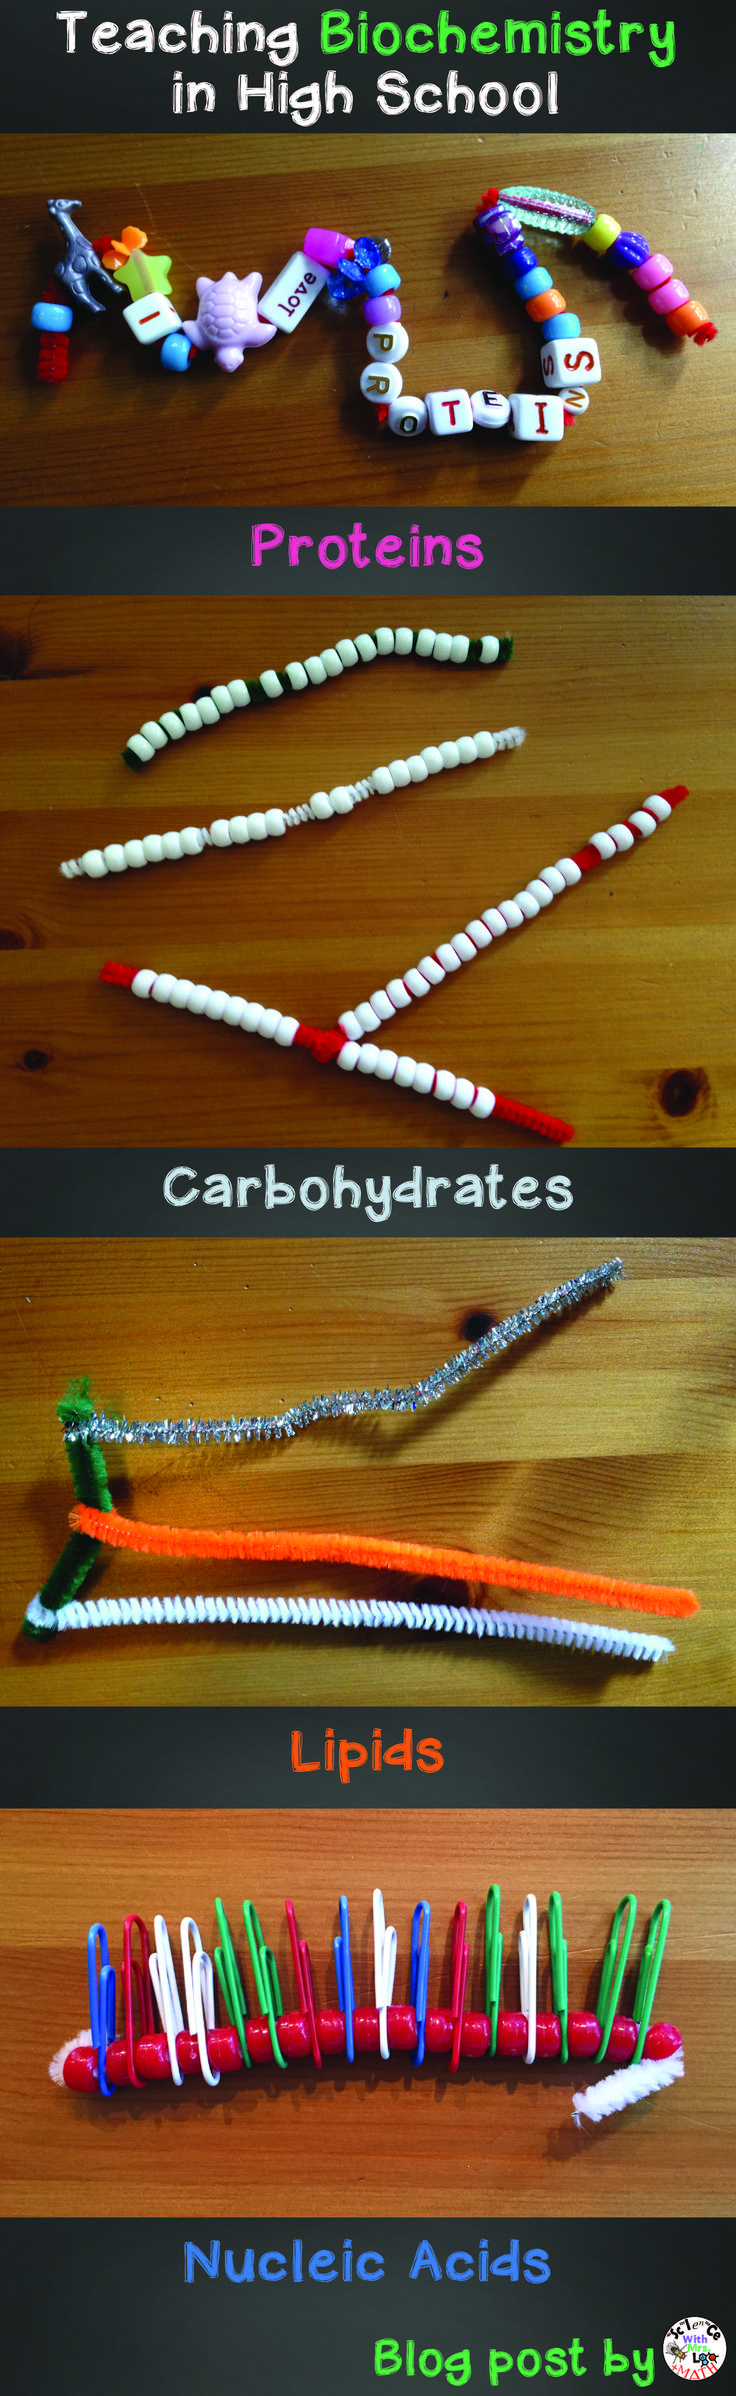 Molecular models science teachers can use to show proteins, nucleic acids, carbohydrates, and lipids  Blog post by Bethany Lau at Science and Math with Mrs. Lau